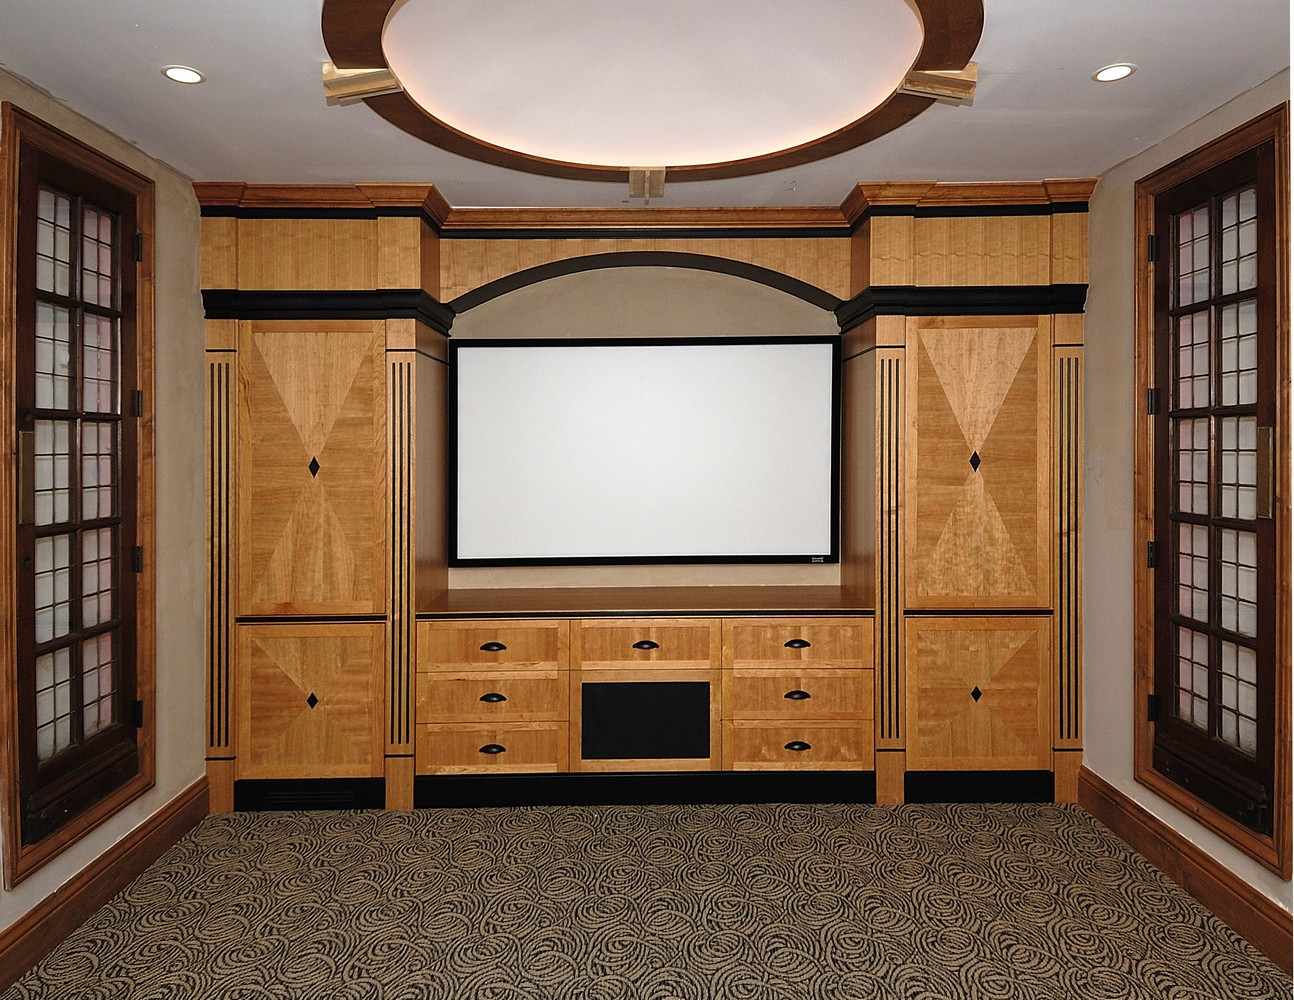 Cherry wood Home Theater cabinet with starburst door panelsTV Media Cabinetry   Unique Design Cabinet Co. Home Theater Cabinet Design. Home Design Ideas